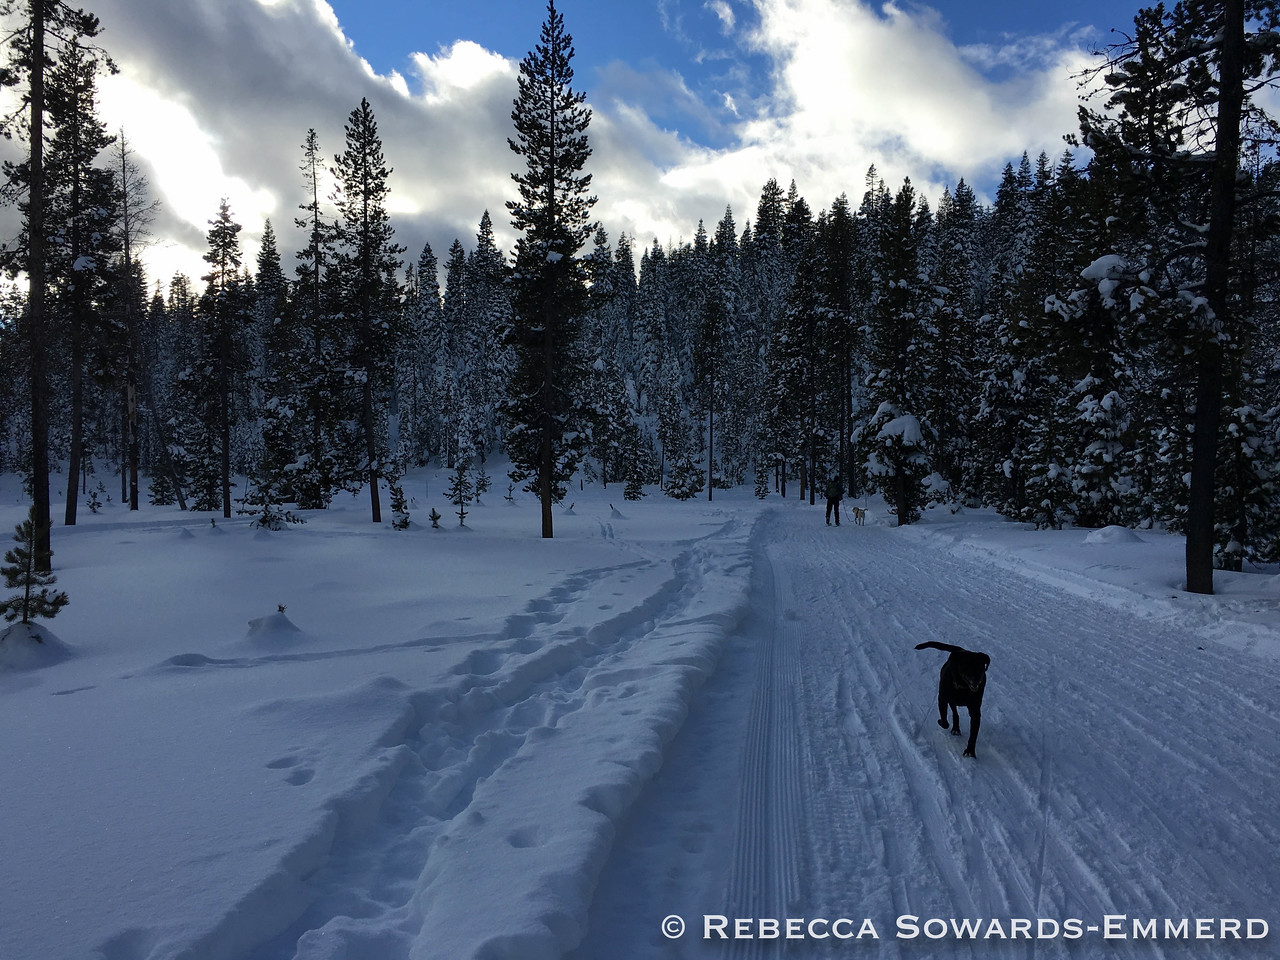 Great groomed trails for cross-country skiing!